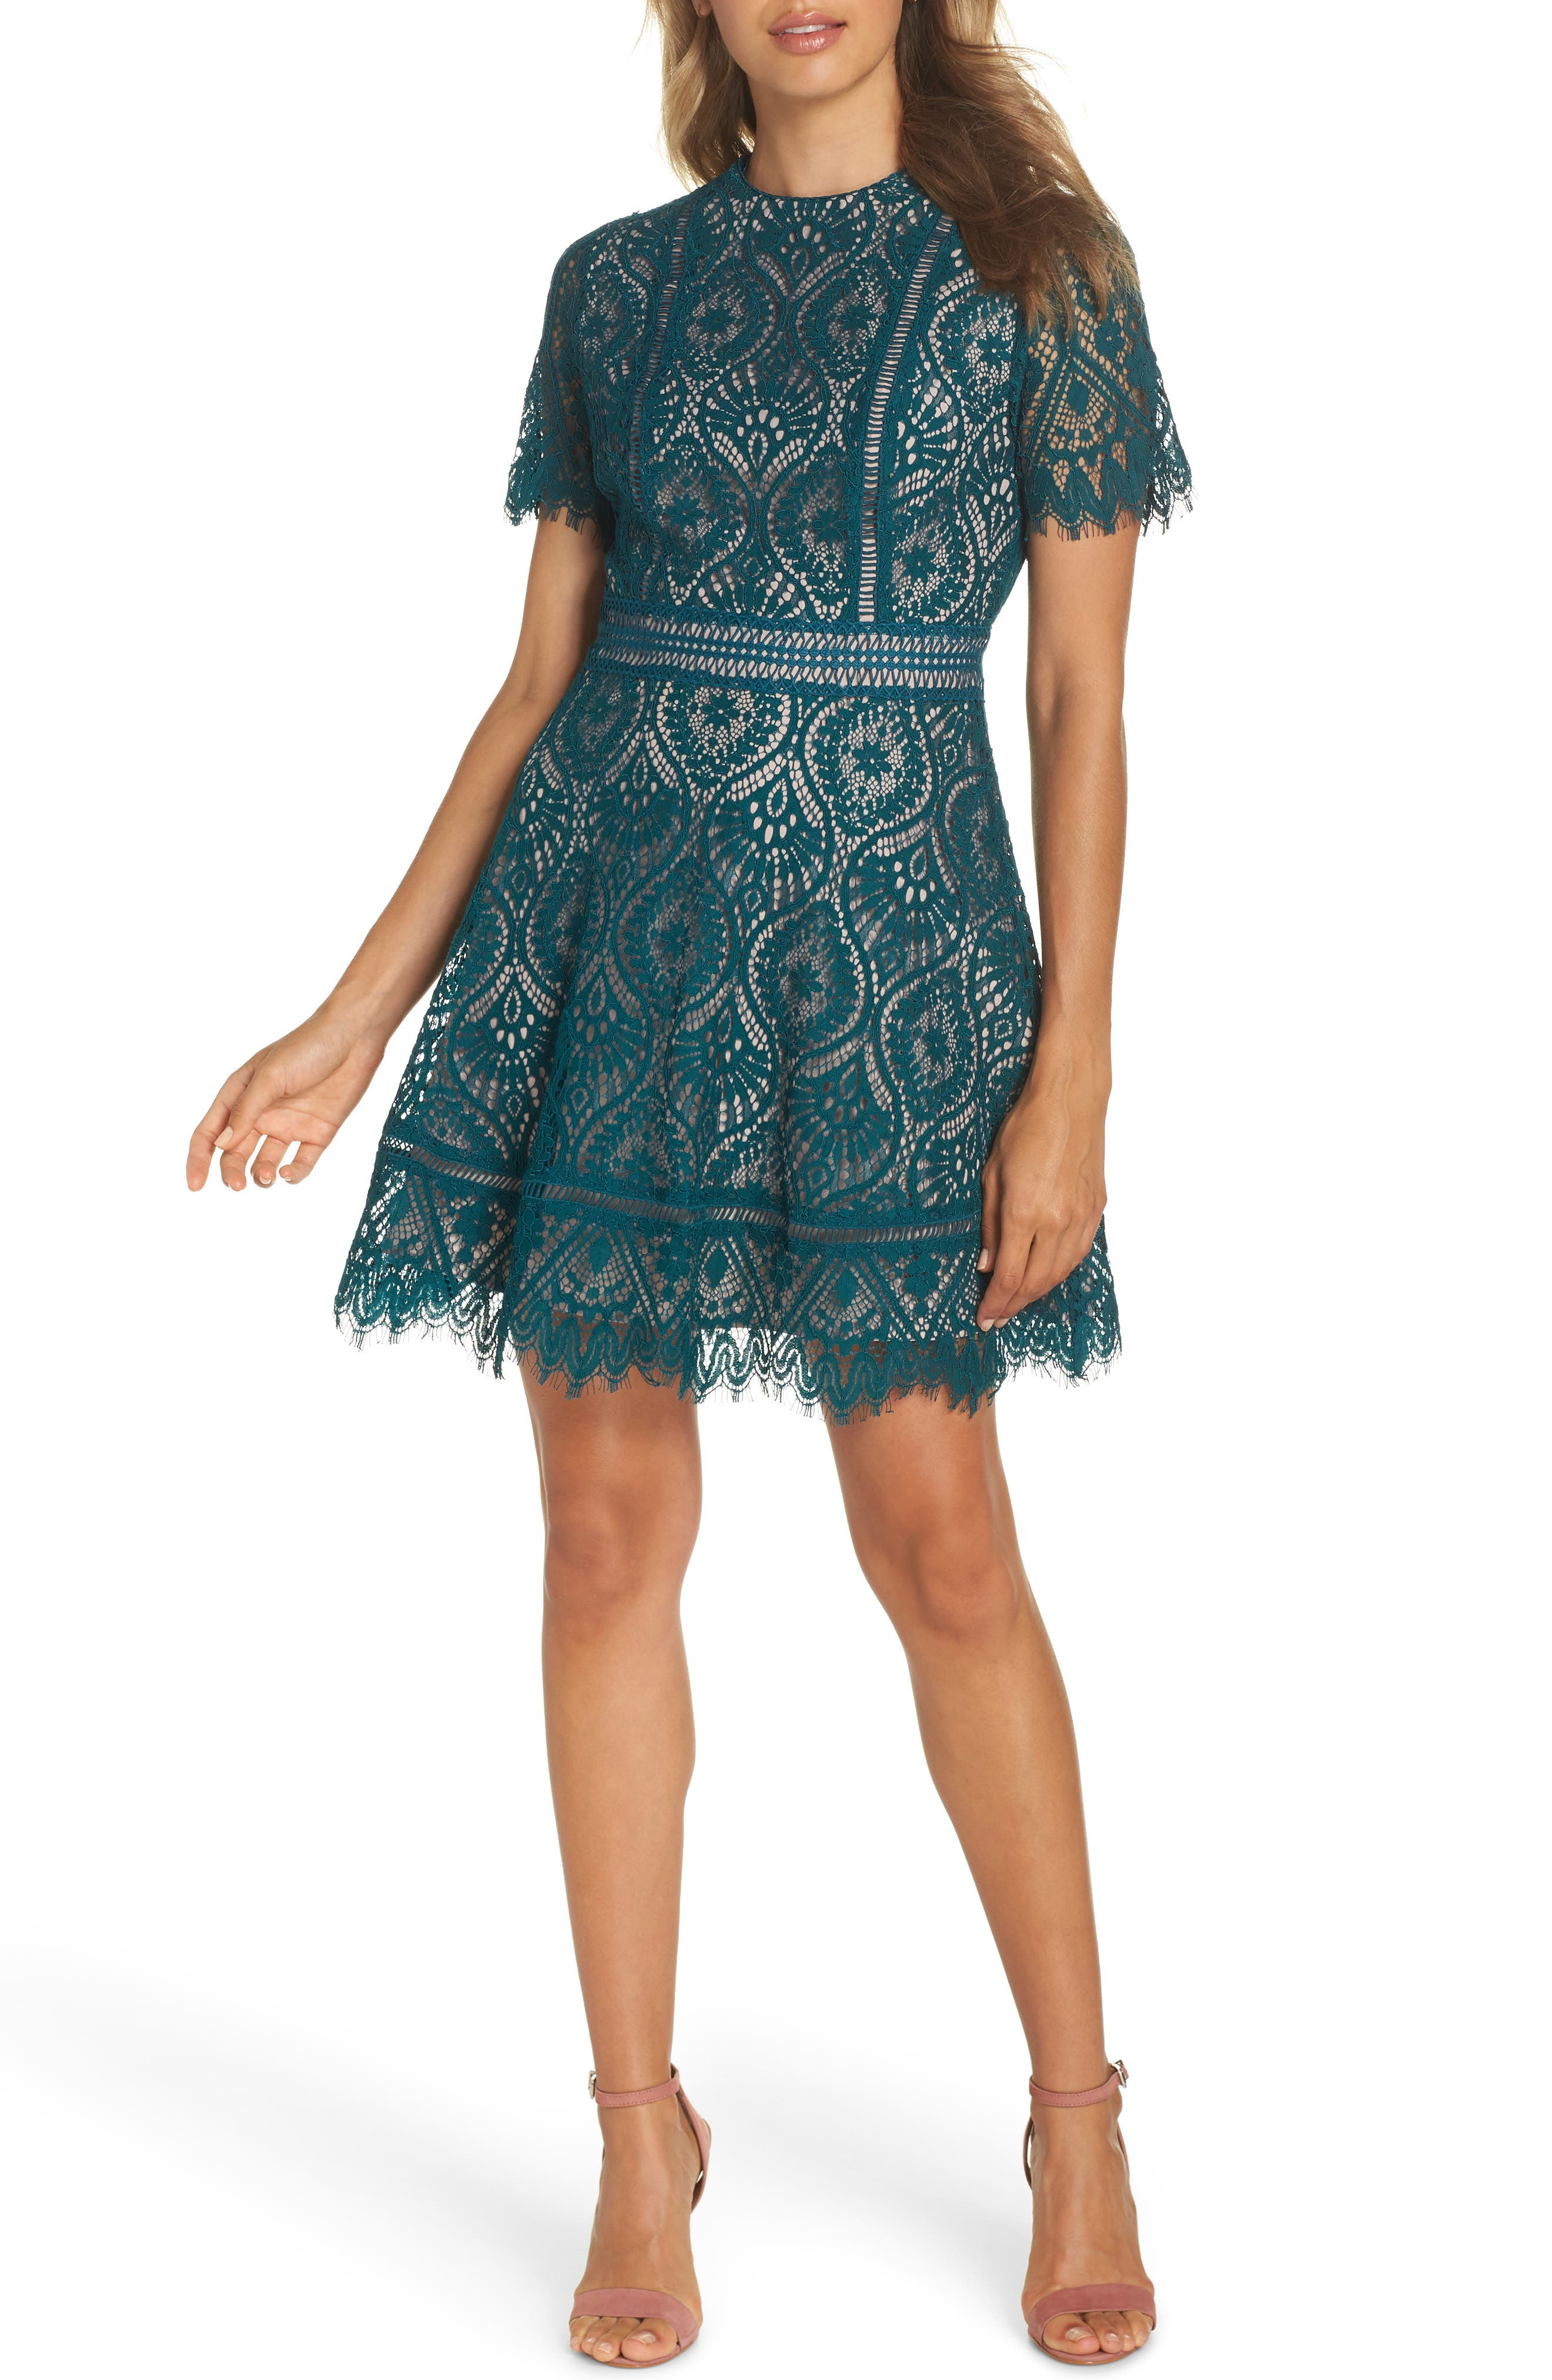 On List Scalloped Lace Dress in Evergreen